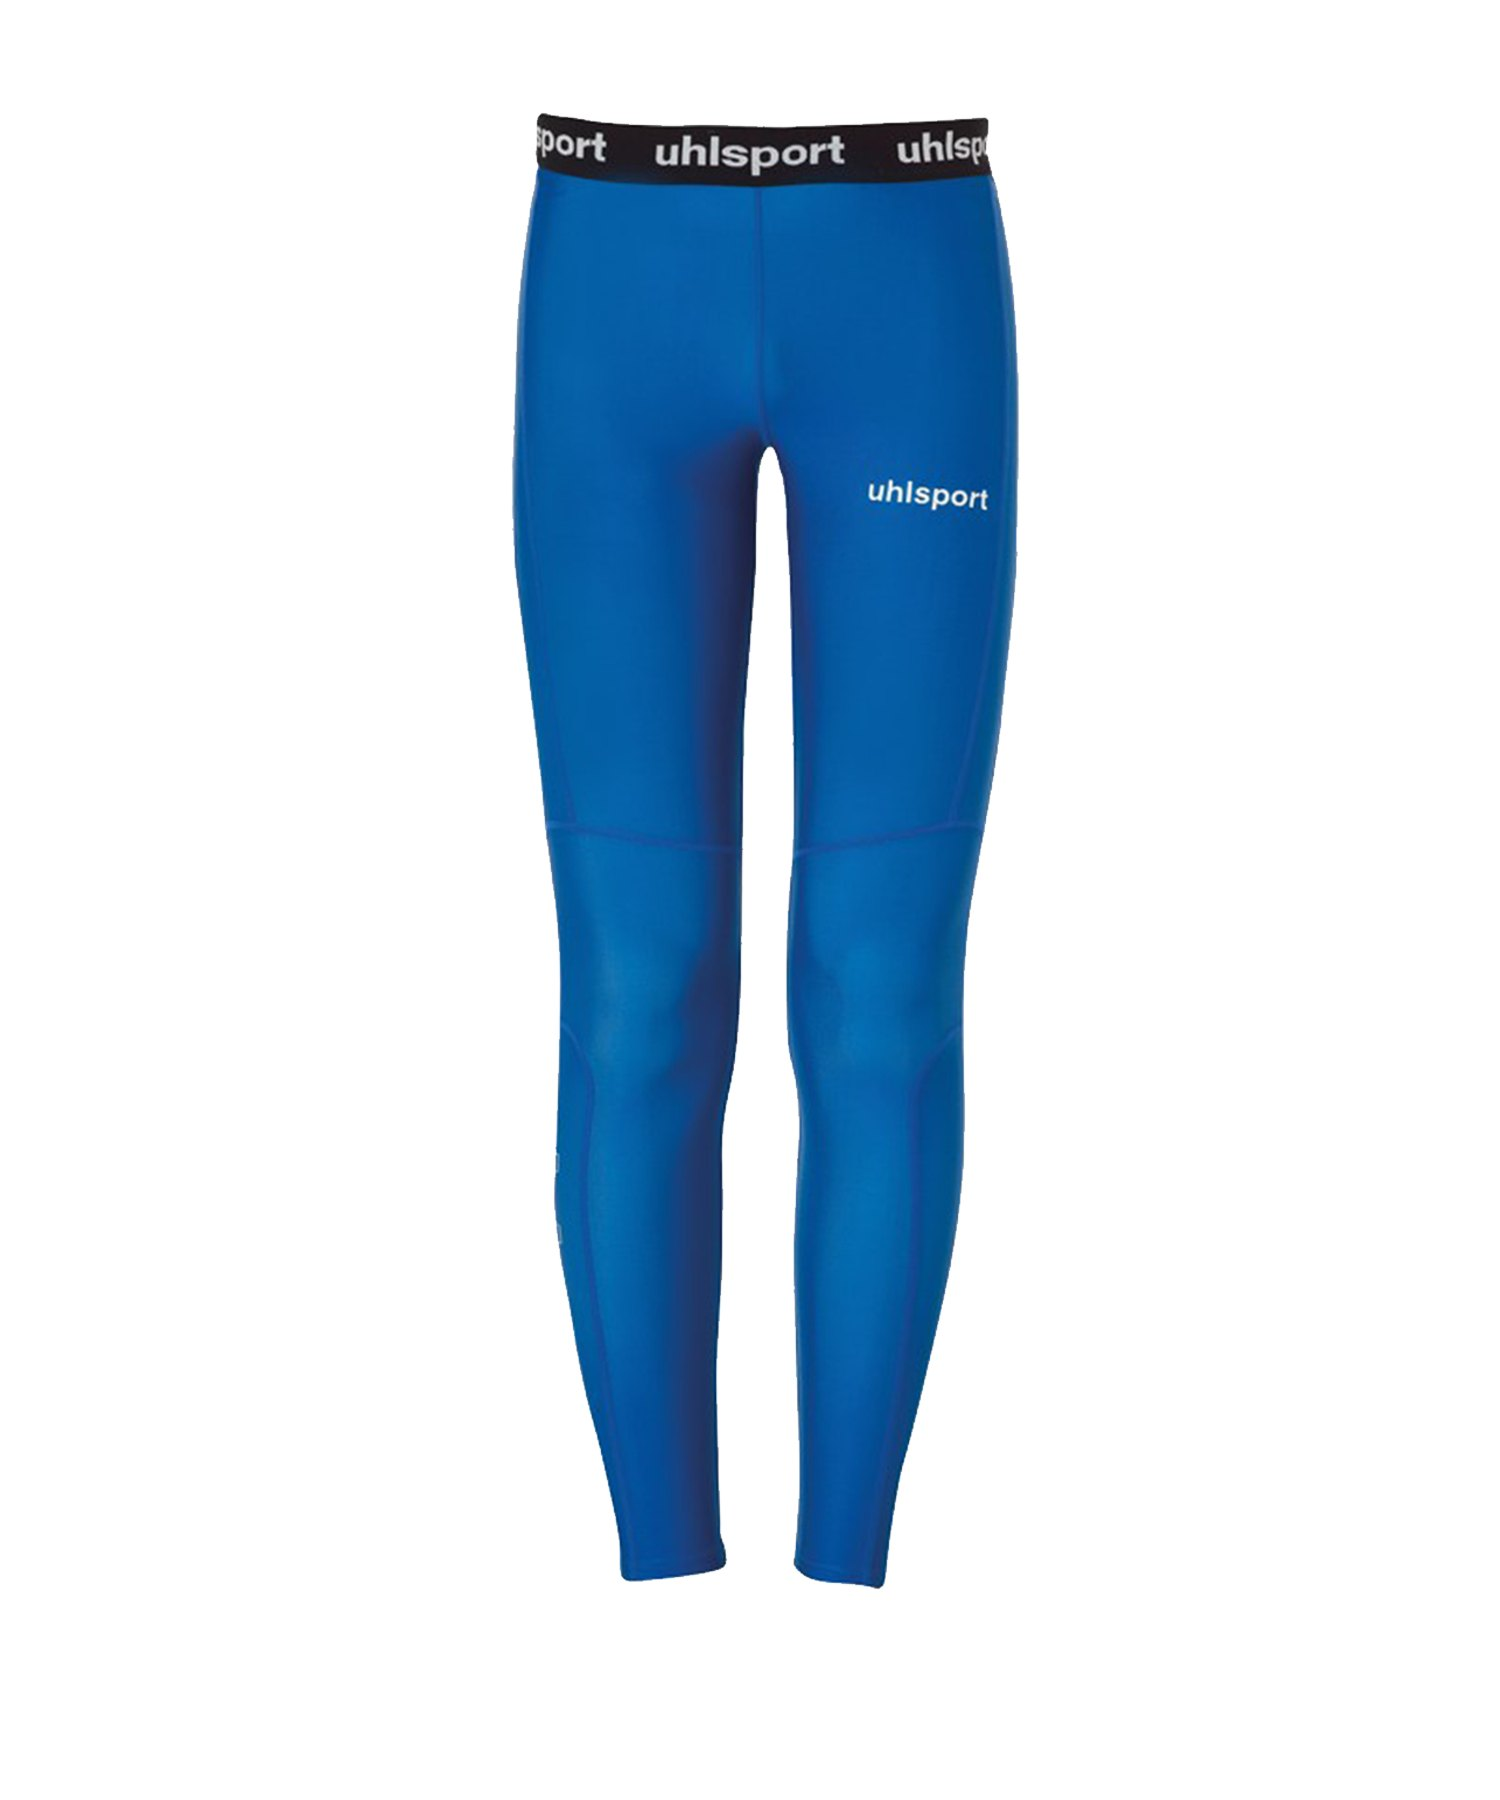 Uhlsport Pro Long Tights Hose Blau F03